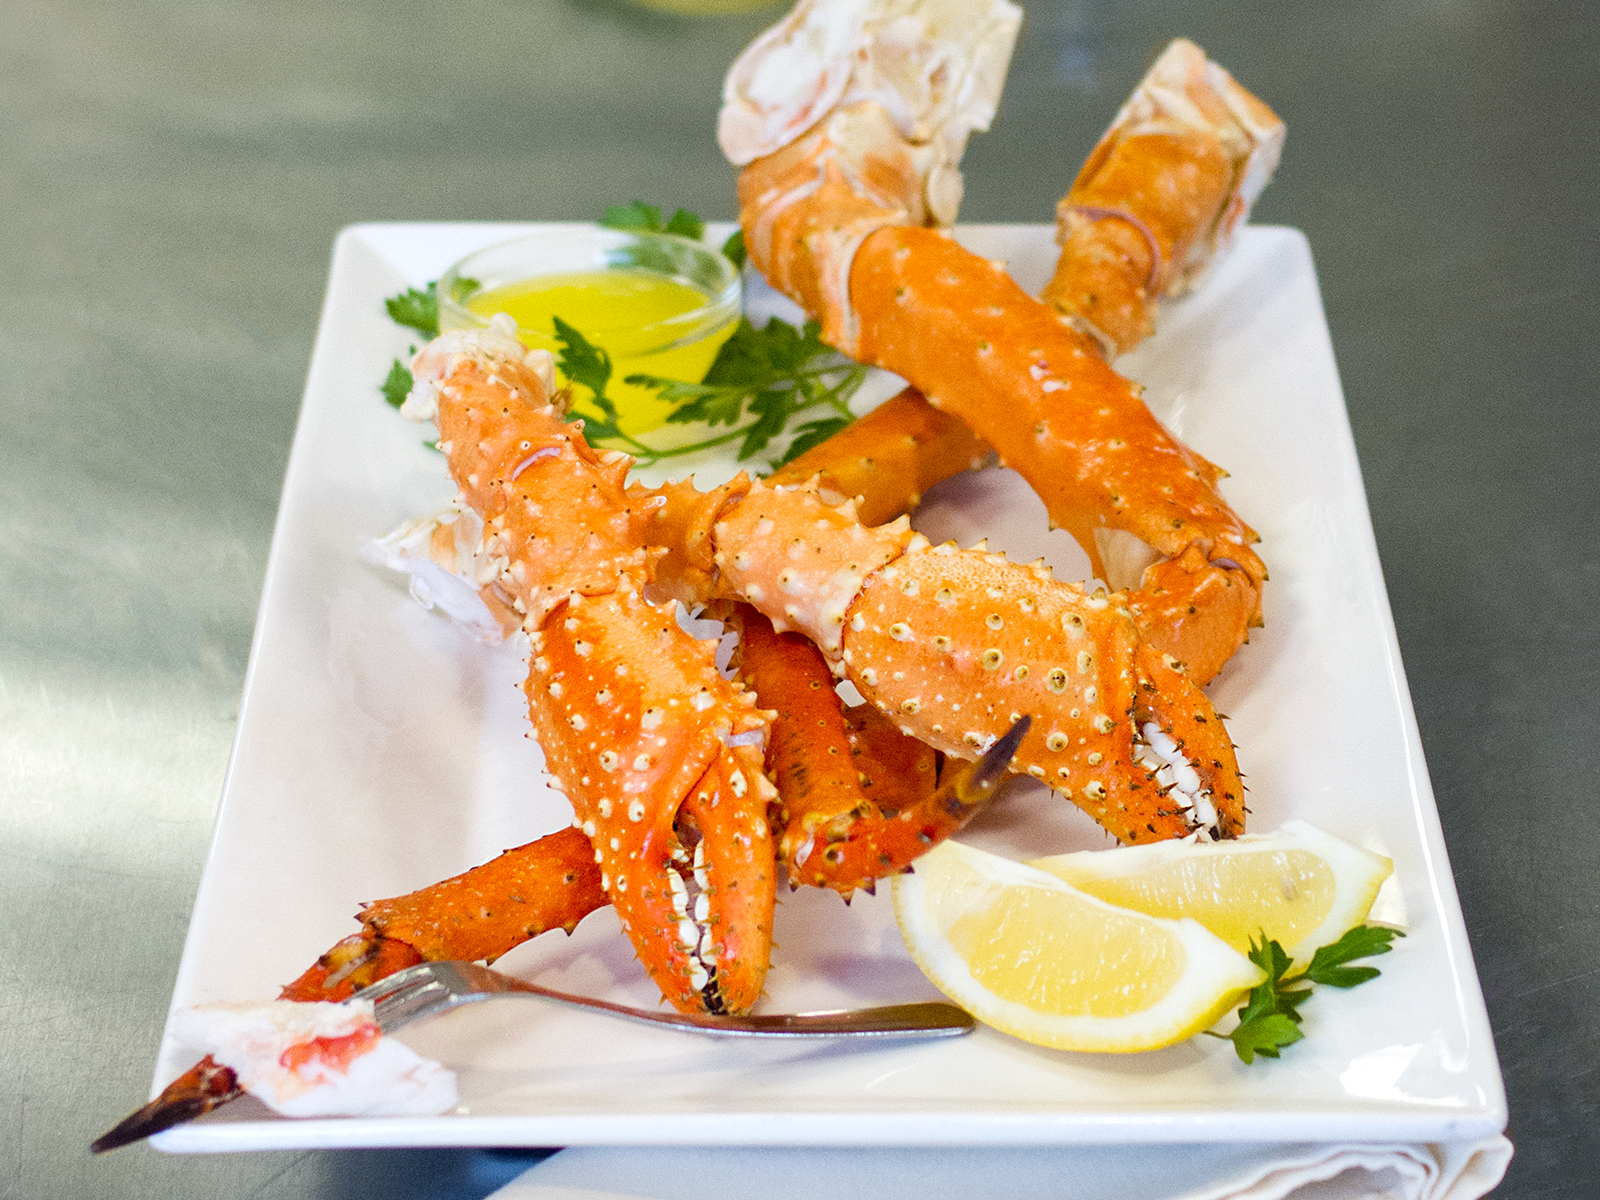 Golden King Crab Legs & Claws 14-17 Count (1/20 lb) 431966